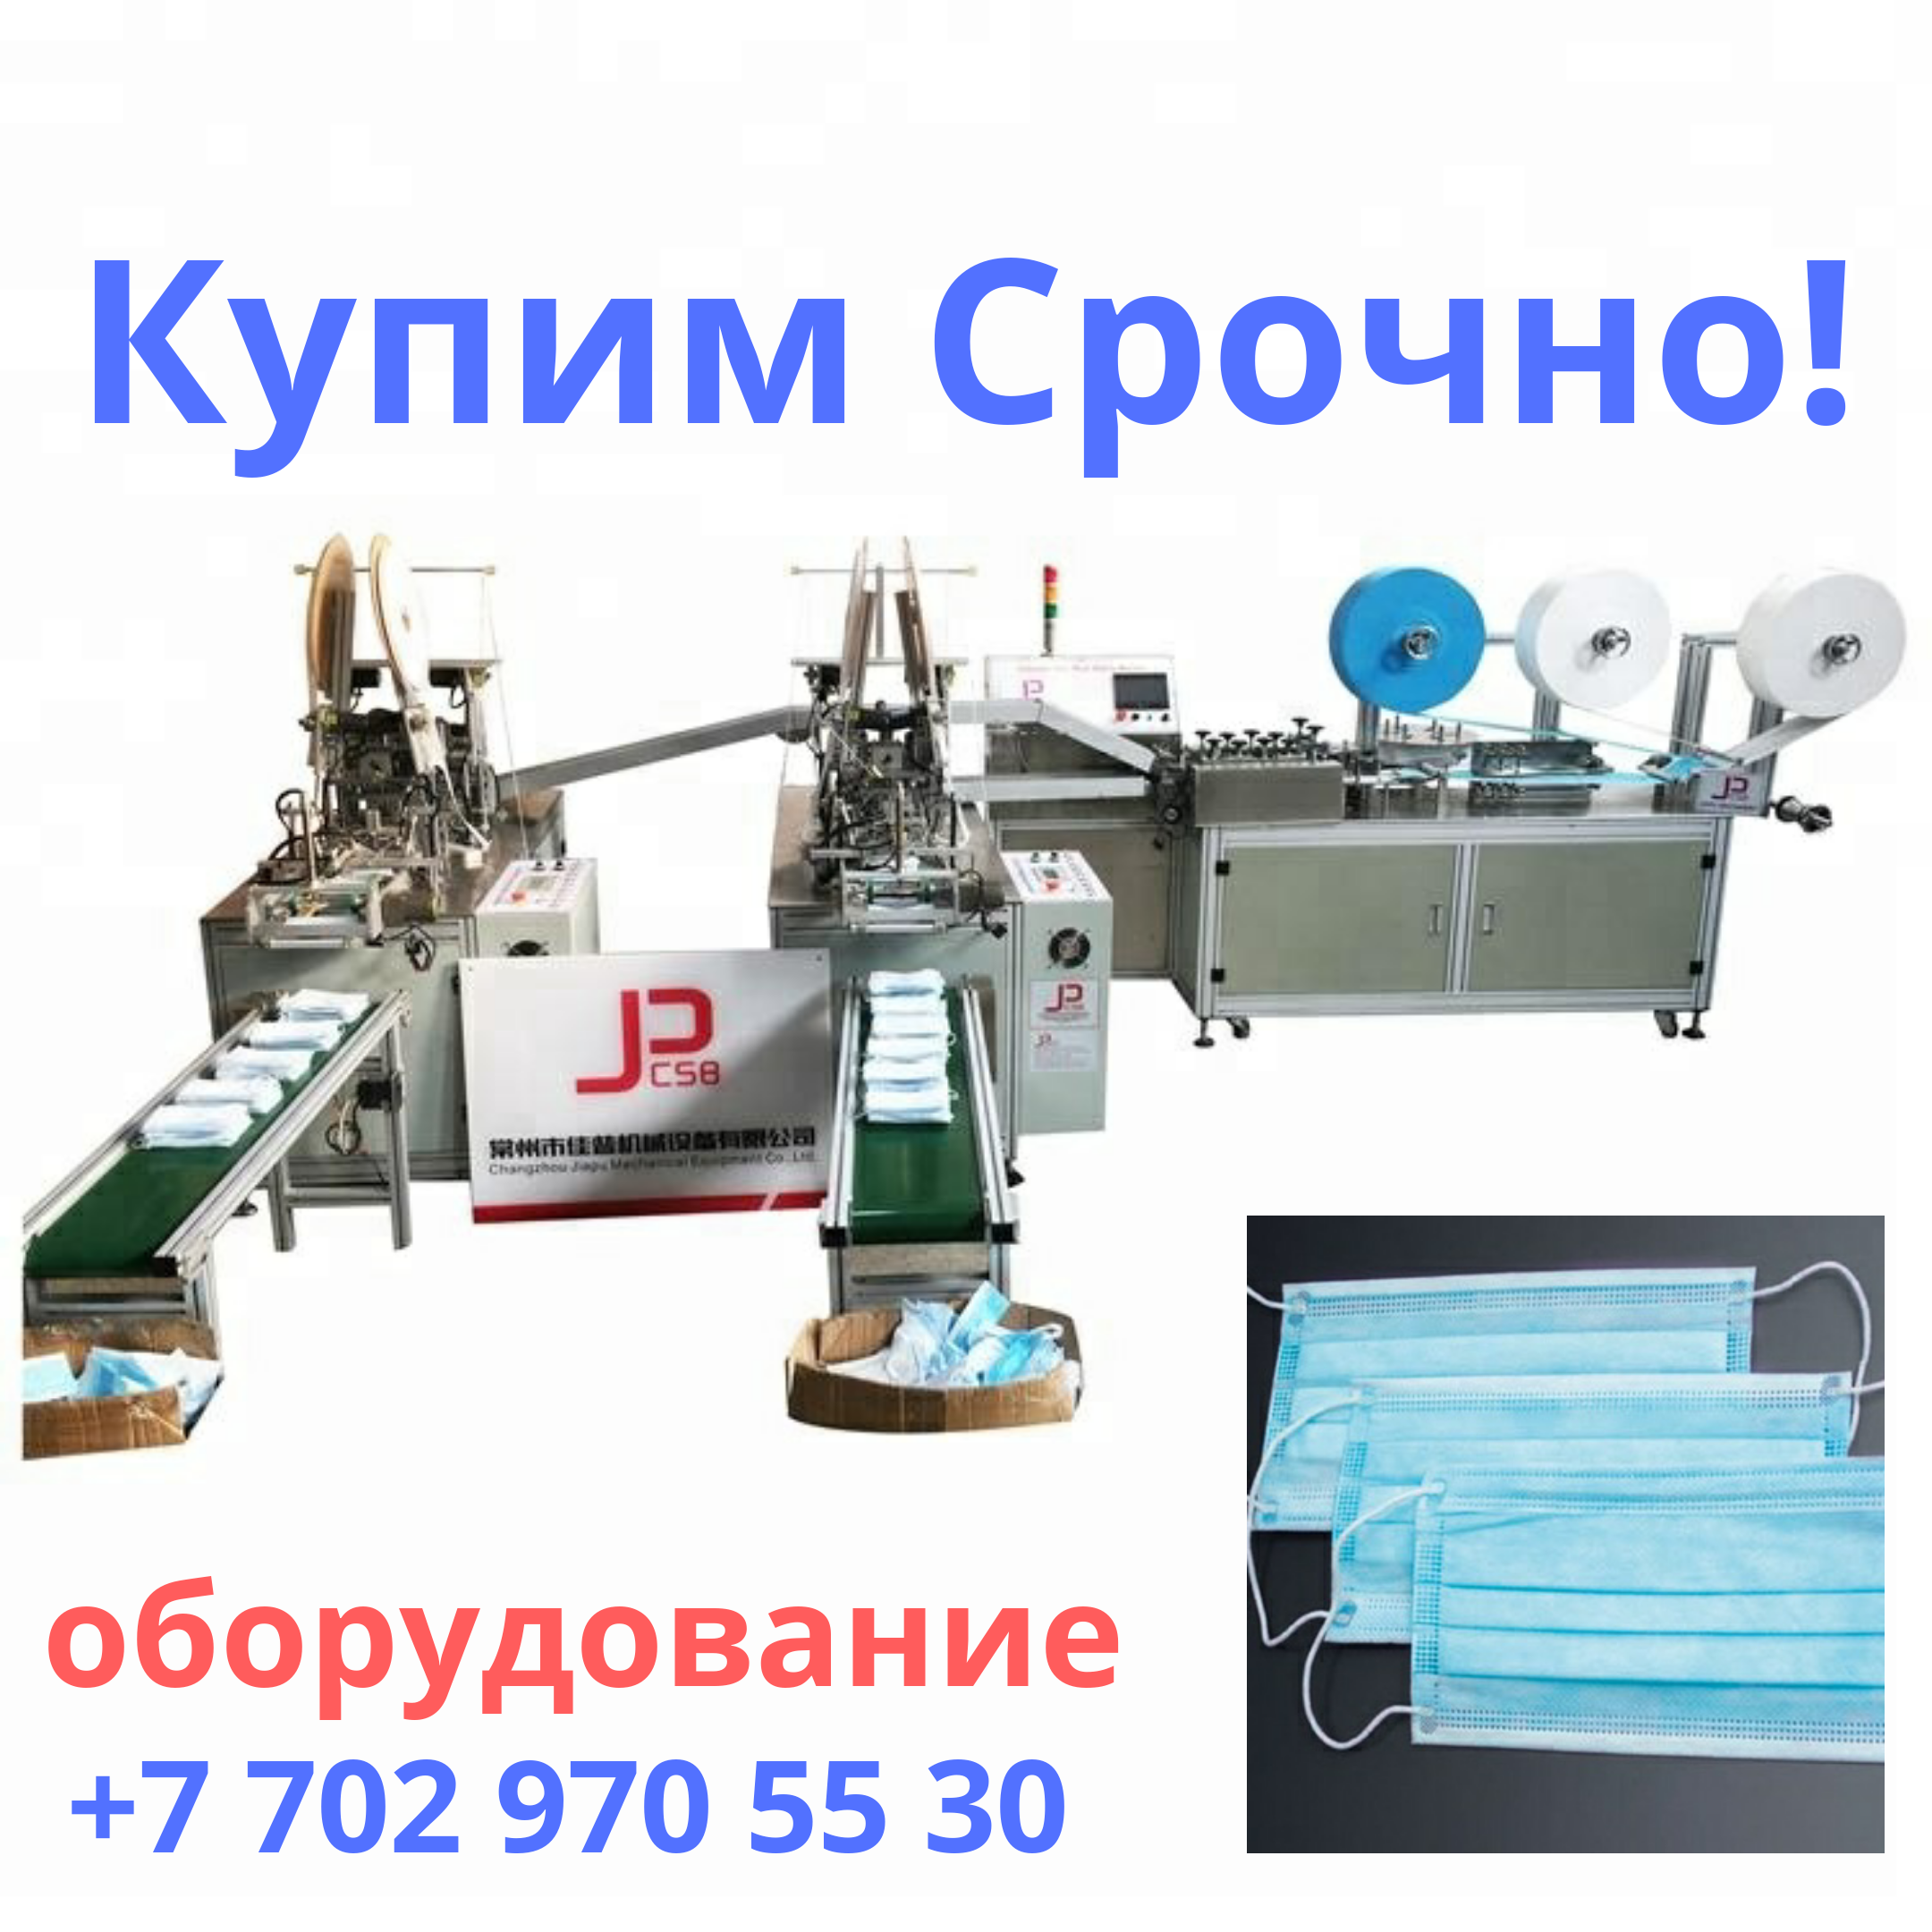 <p>We will buy equipment for the production of masks.</p>  <p>Urgently! It must be in stock&nbsp;</p>  <p>Budget from $ 40,000 to $ 80,000</p>  <p>1 to 5 equipments</p>